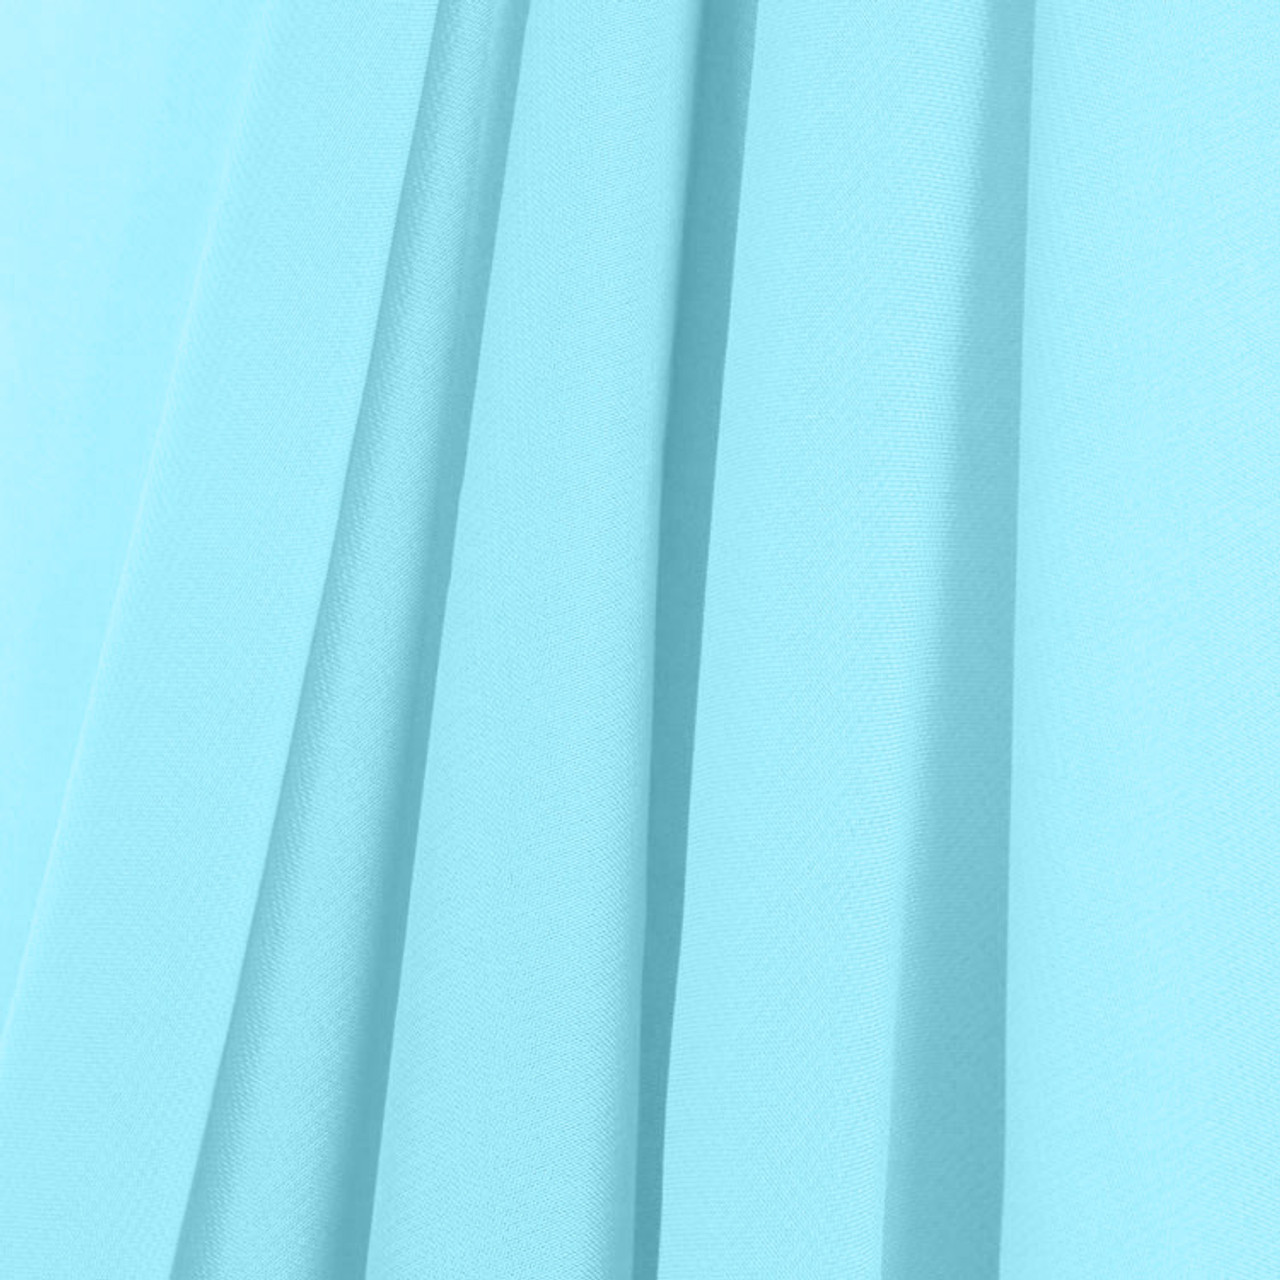 Baby Blue Chiffon Drapes Panels For Wedding Events Decor Backdrop Draping Curtains Ak Trading Co